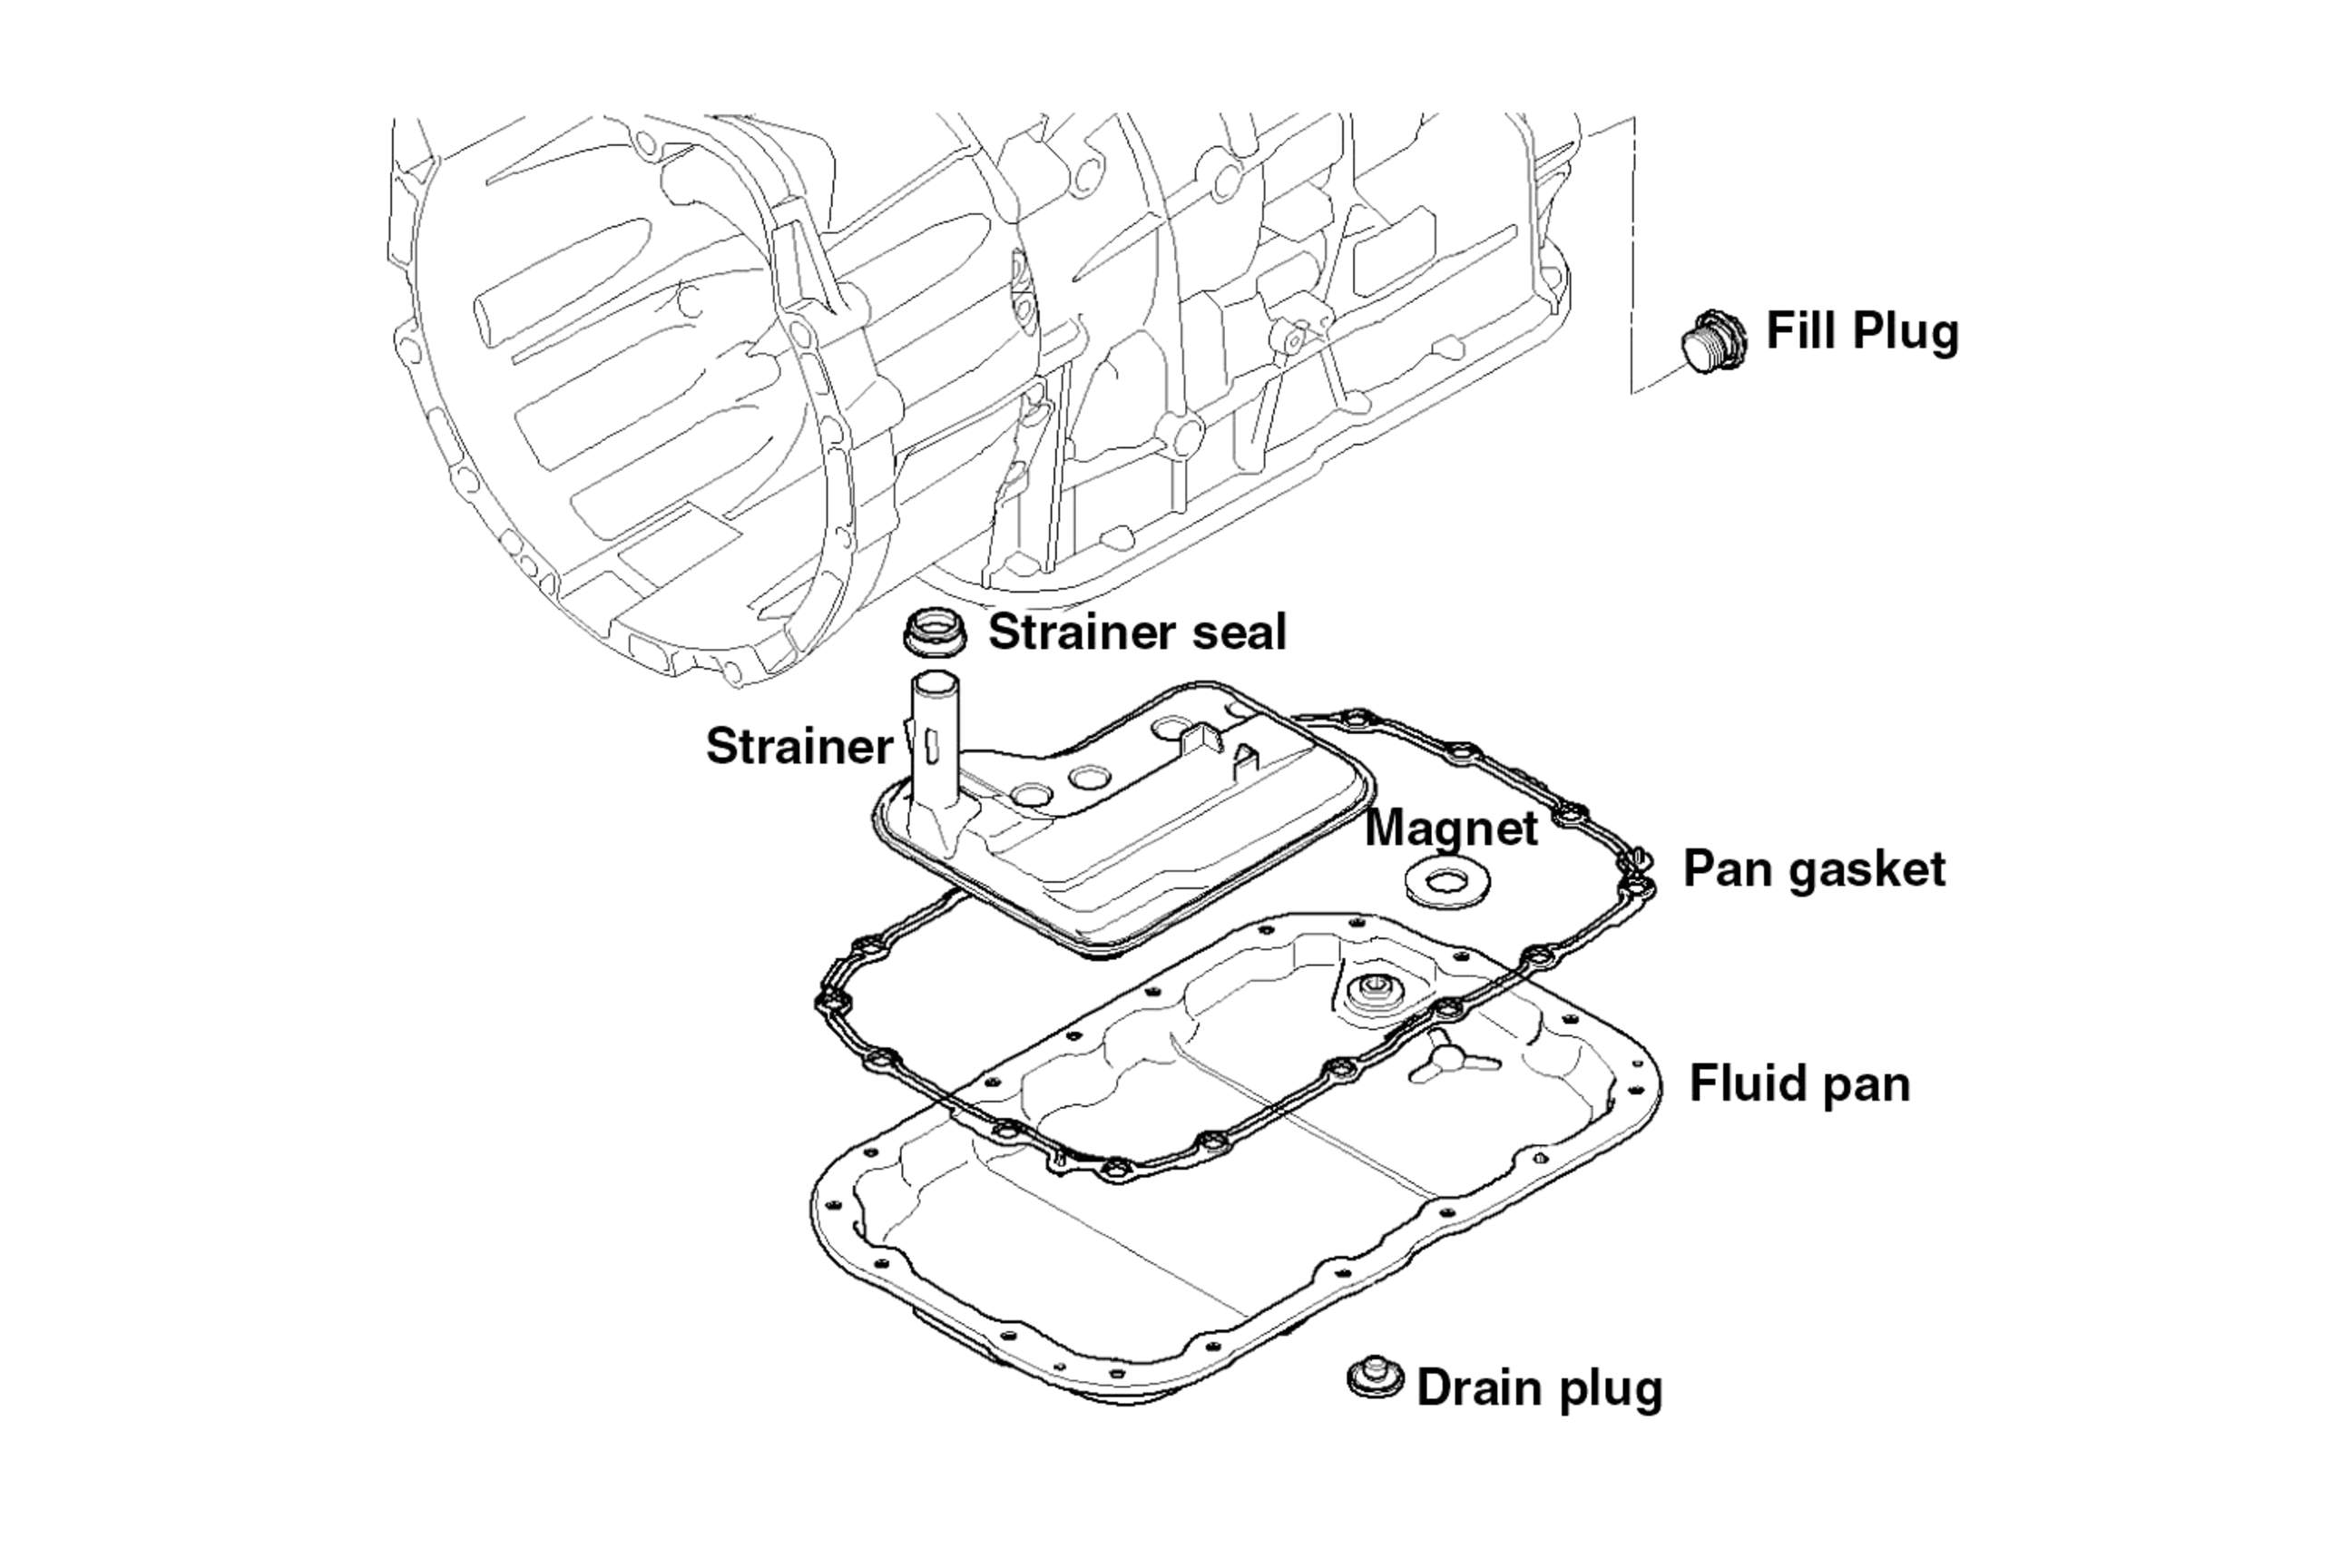 RepairGuideContent as well 2008 Jeep Patriot Fuse Box Diagram as well 2ulmo Removal Acura Radiator 1998 Rl 3 5 Drain additionally DB6u 5389 likewise P 0900c152800adafa. on chrysler town and country parts diagram